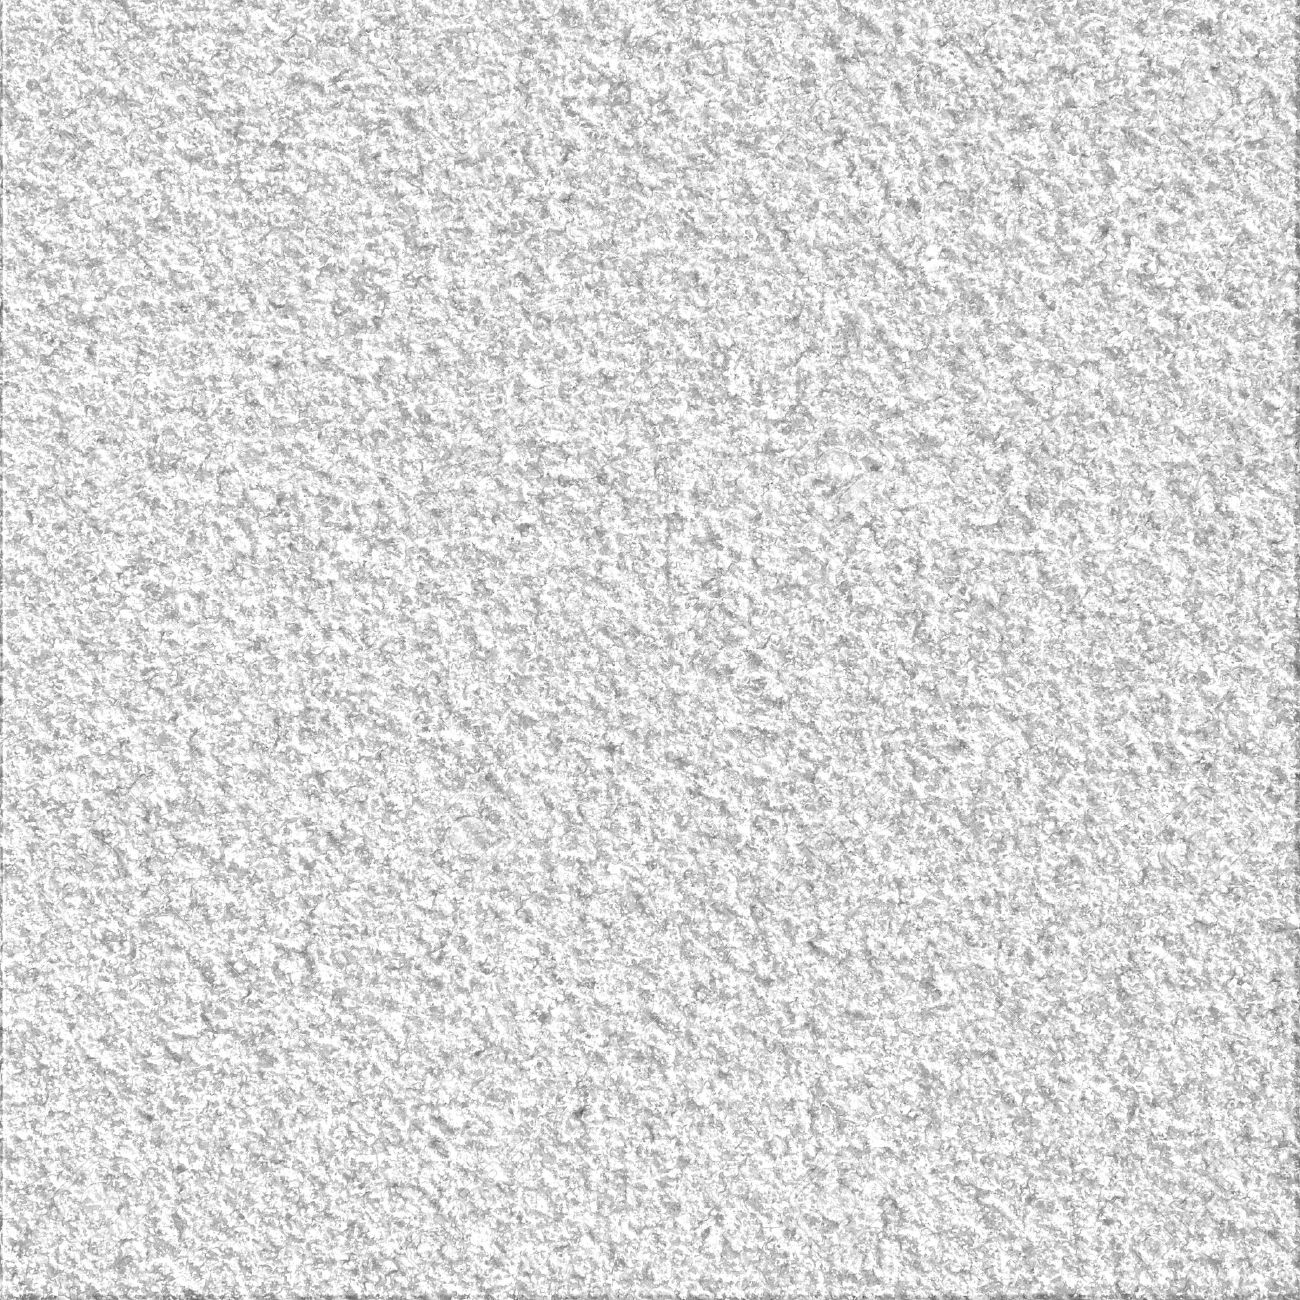 Old White Wall Grunge Background Grain Texture Stock Photo